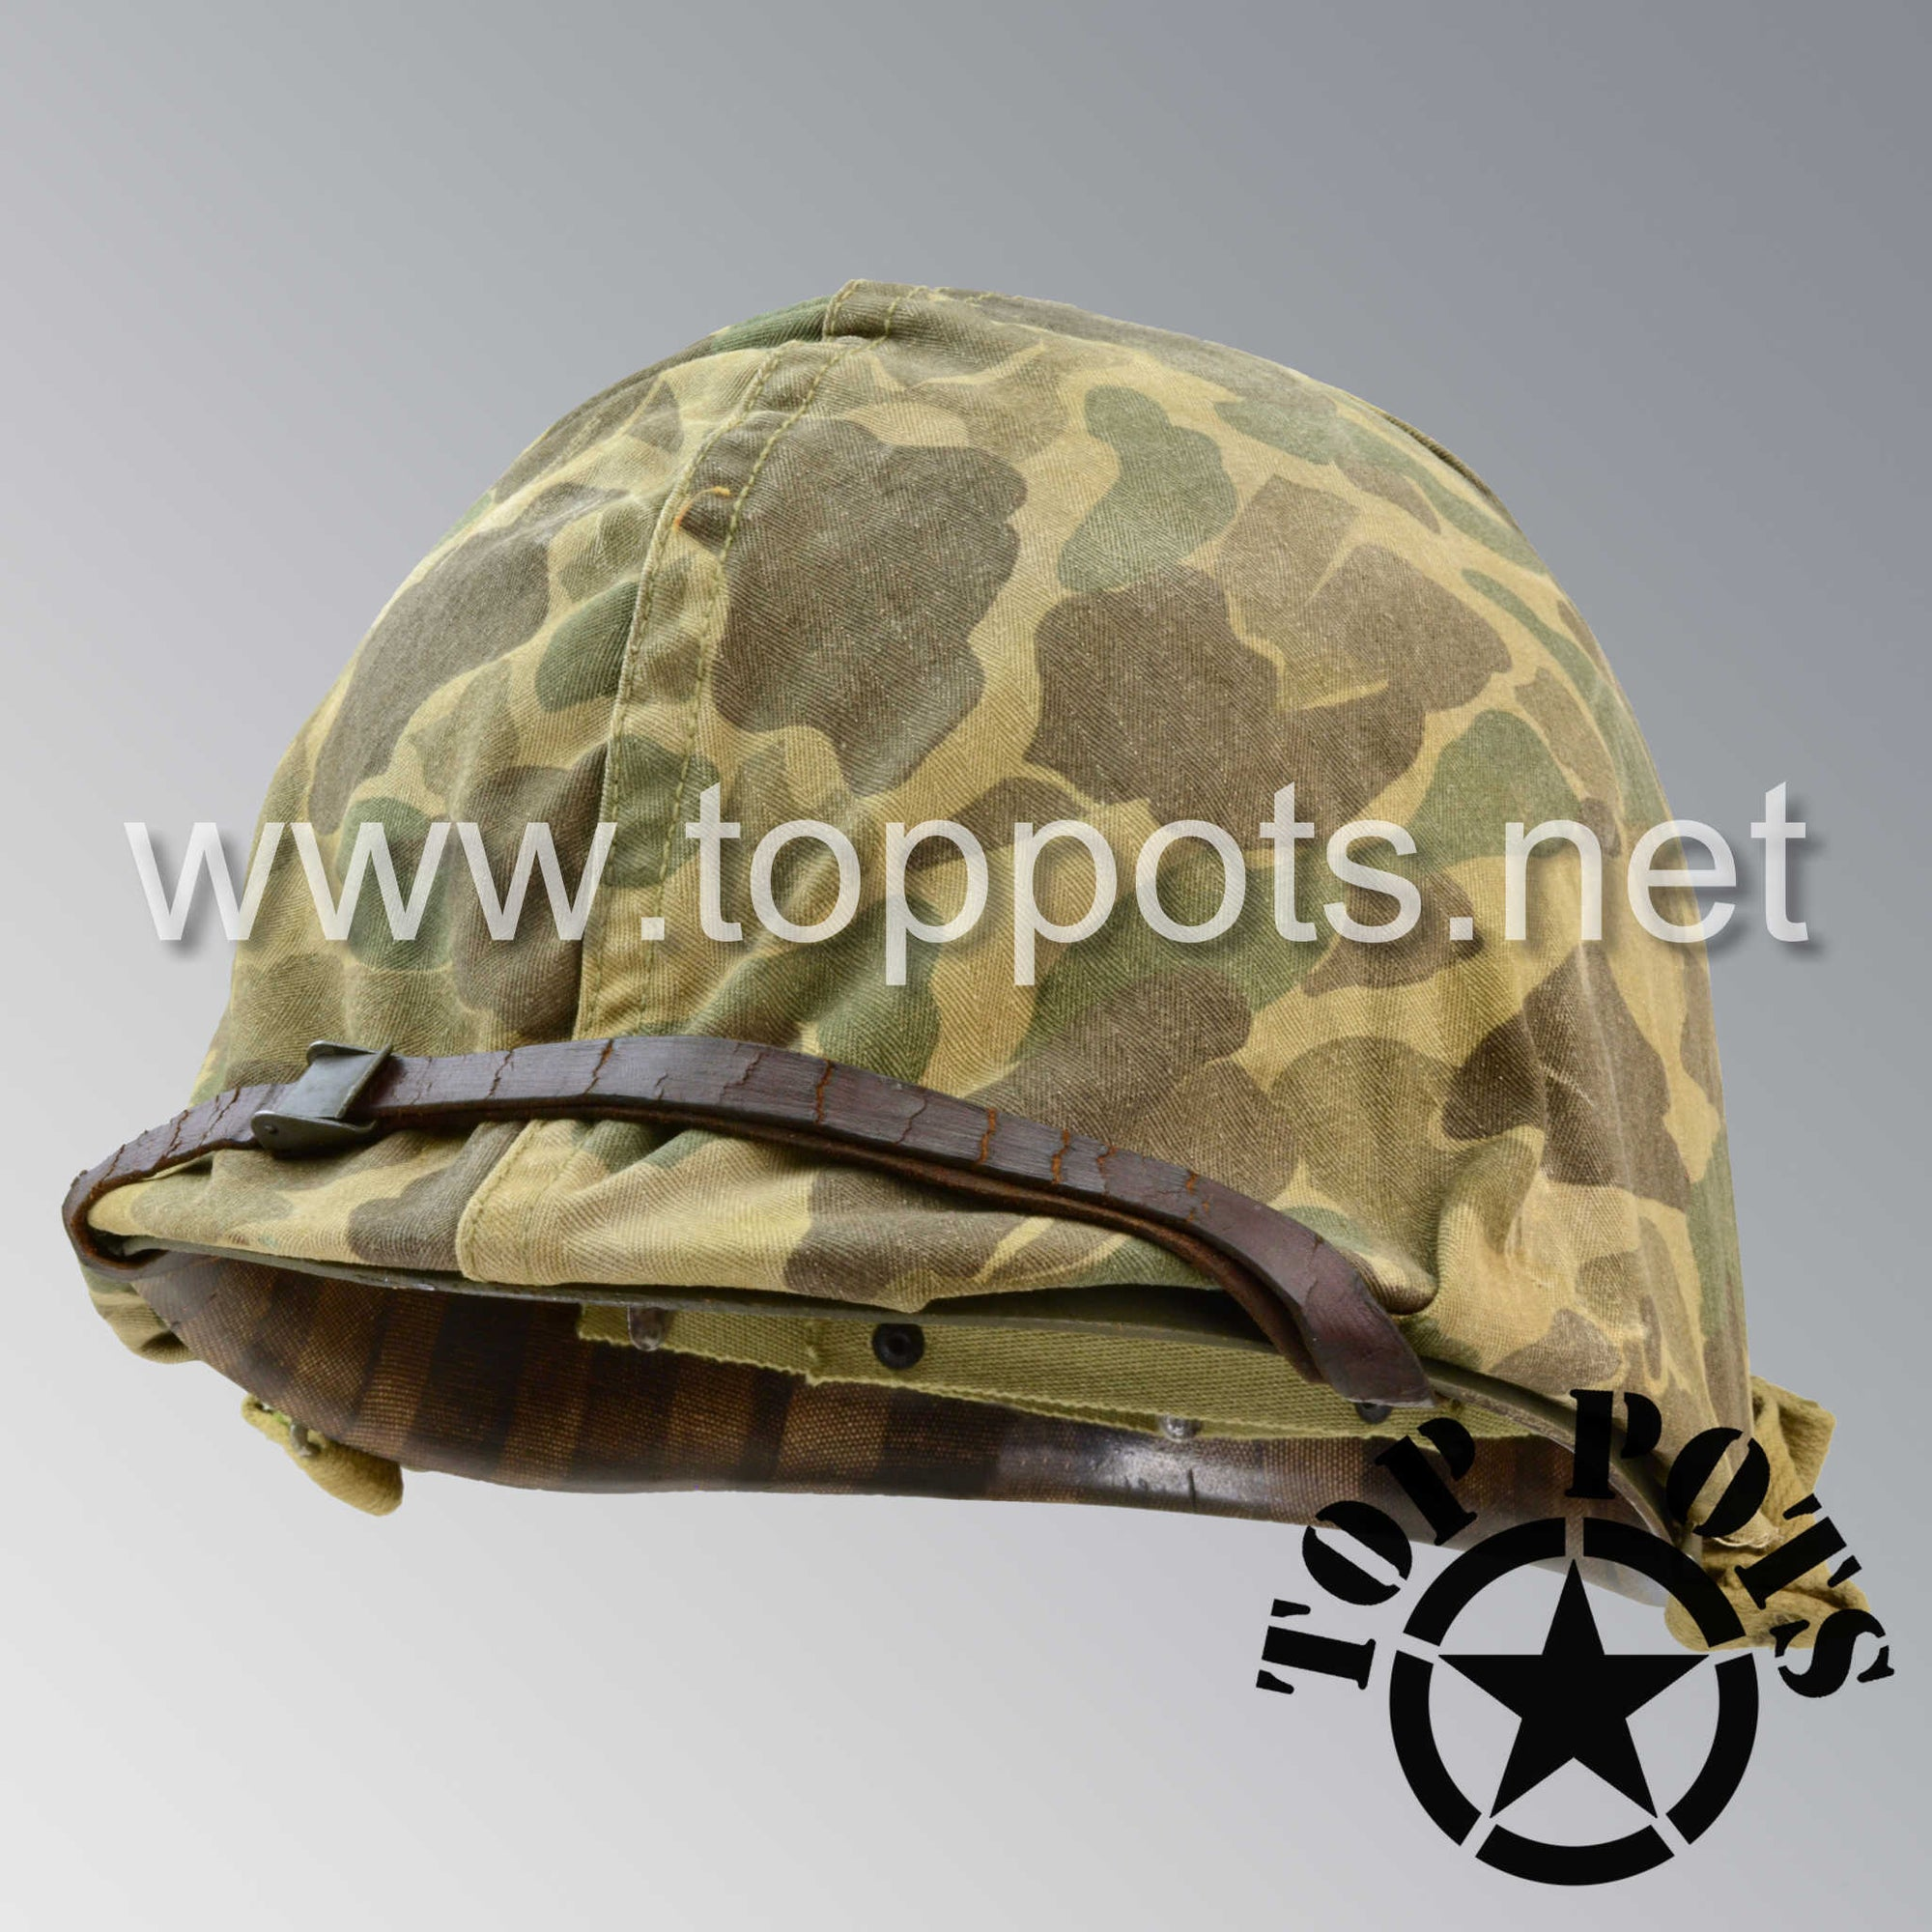 Image 1 of WWII USMC Aged Original M1 Infantry Helmet Fix Bale Shell and Liner with Marine Corps Camouflage Cover